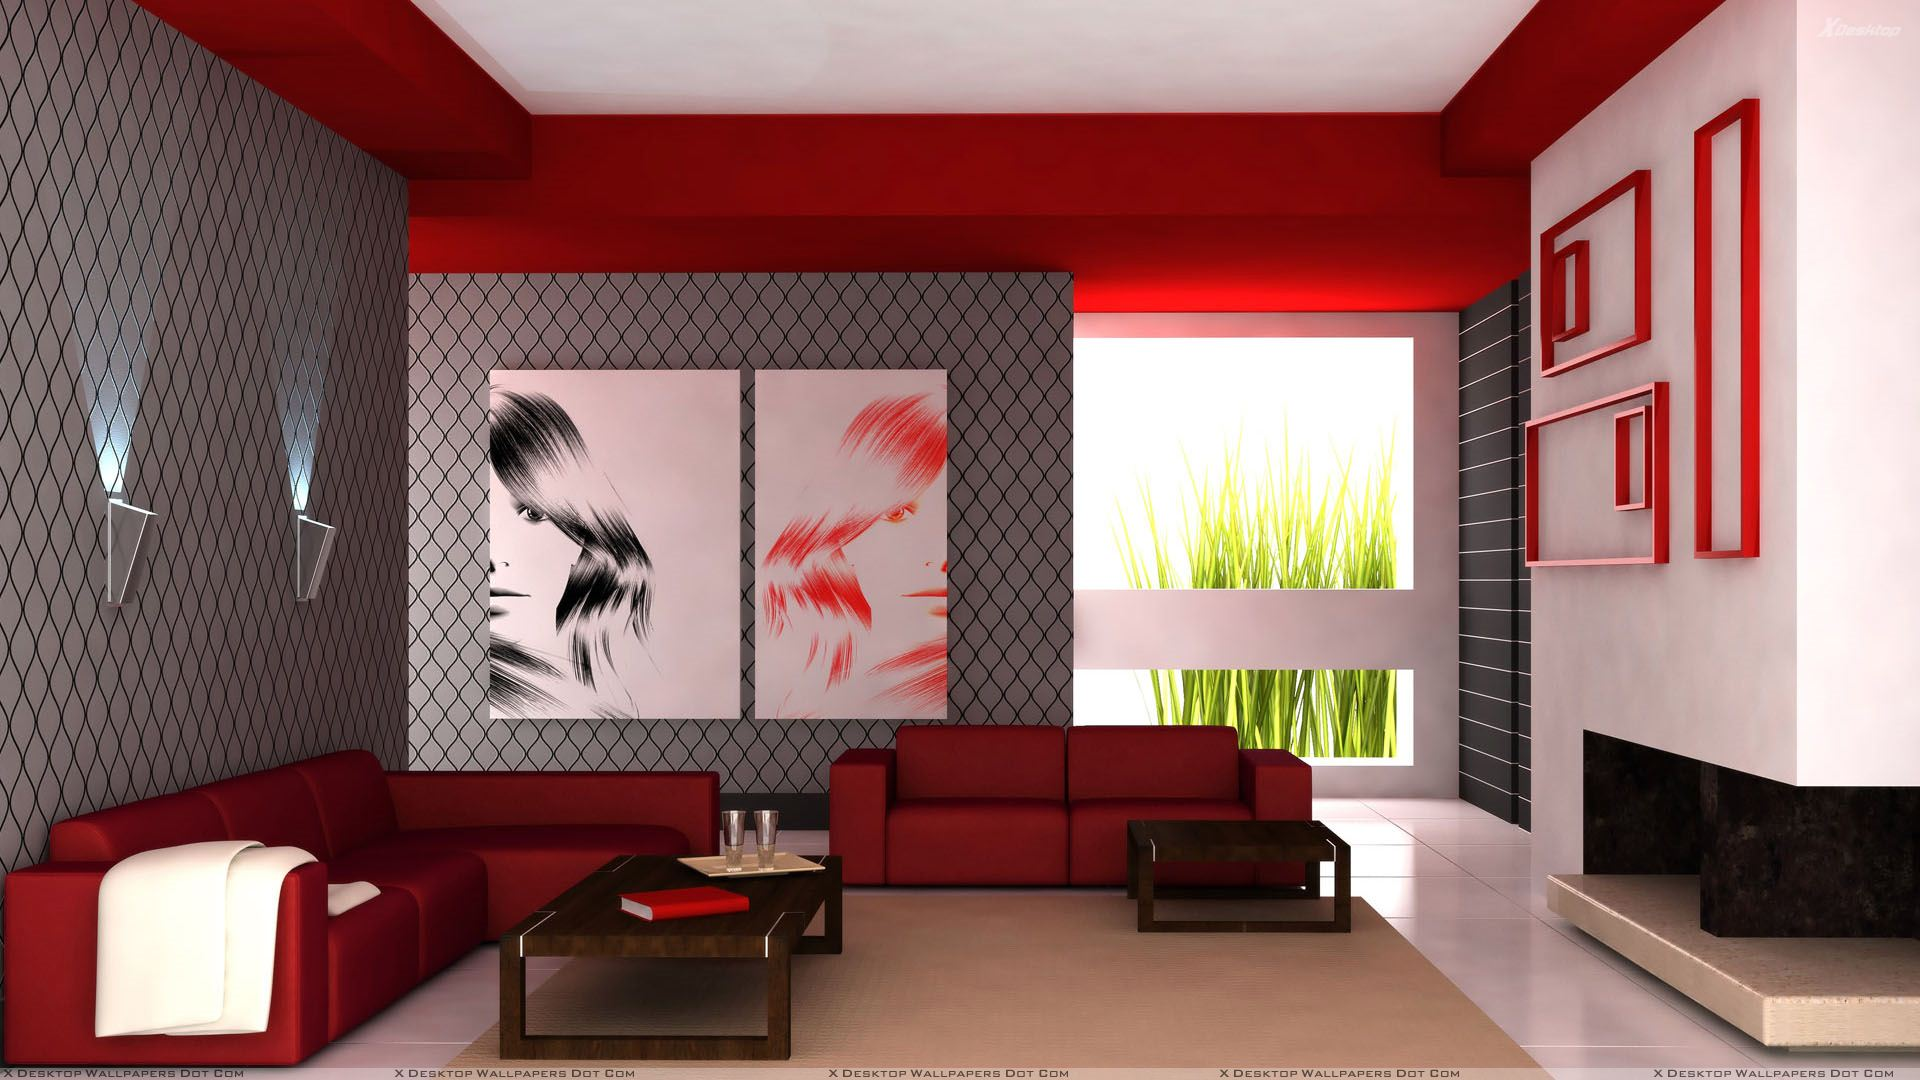 Red sofa and colorful background in guest room wallpaper for Red wallpaper designs for living room